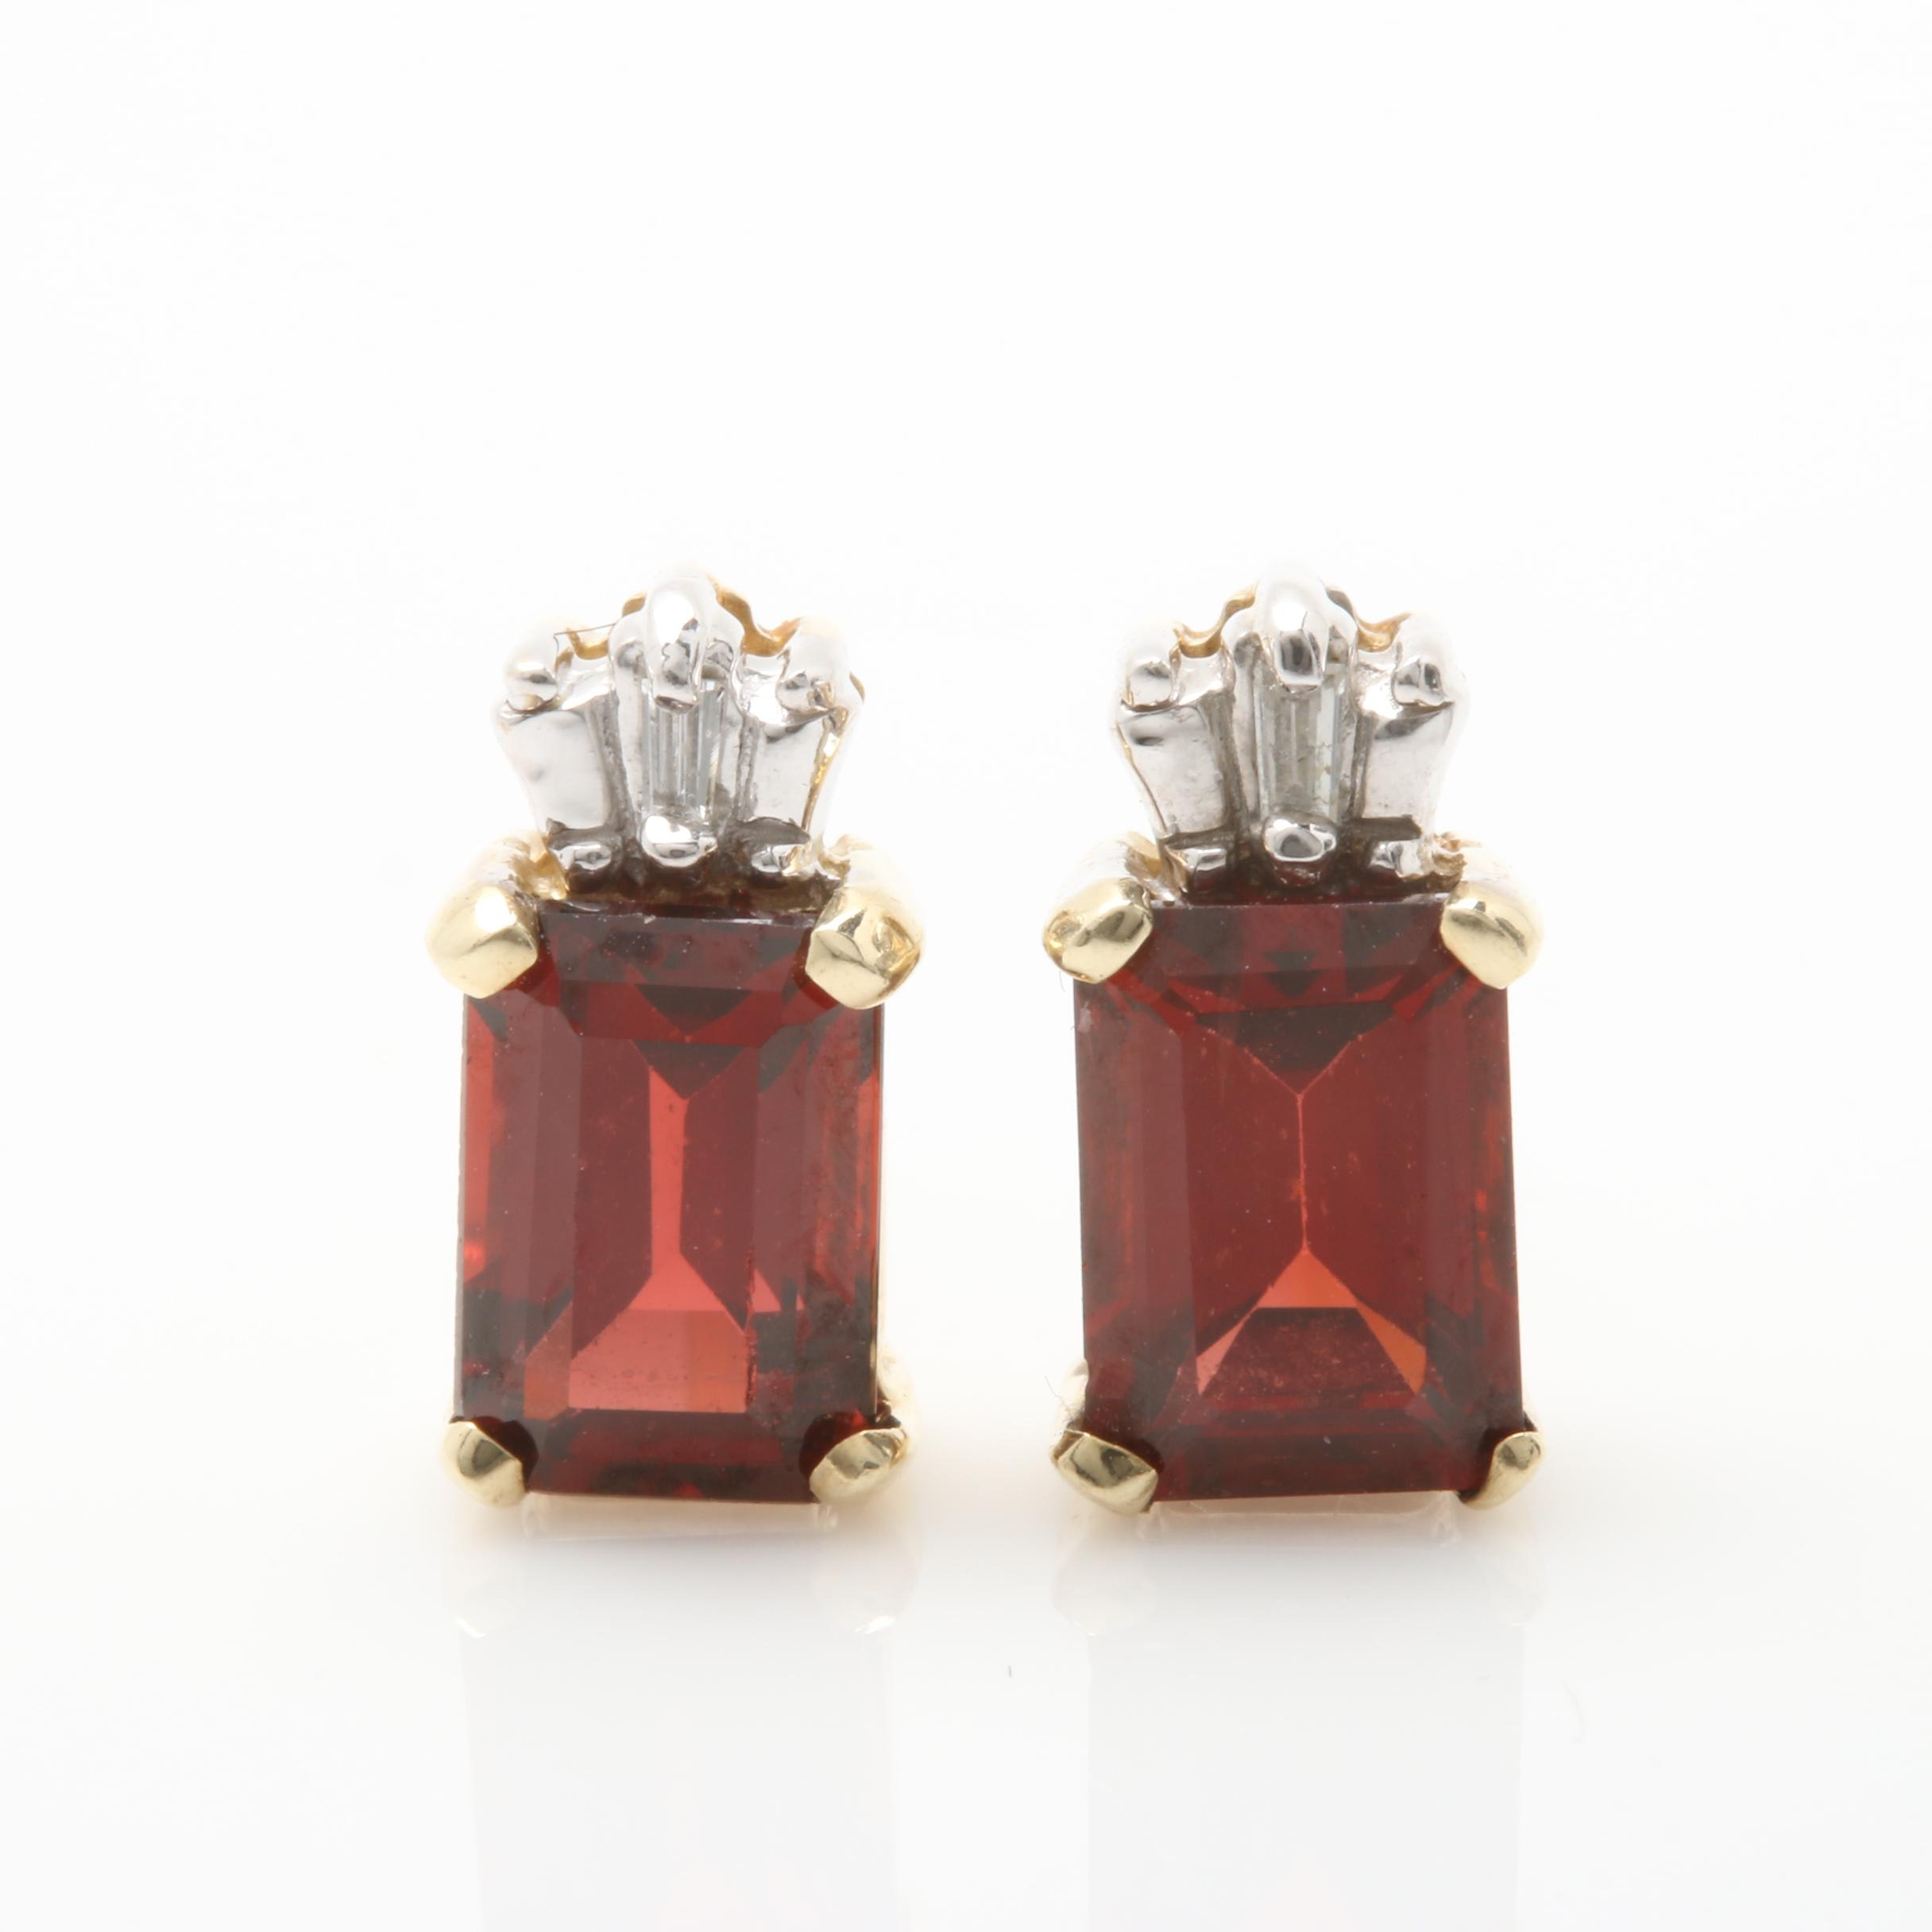 10K Yellow Gold Garnet and Diamond Stud Earrings With 14K Yellow Gold Posts